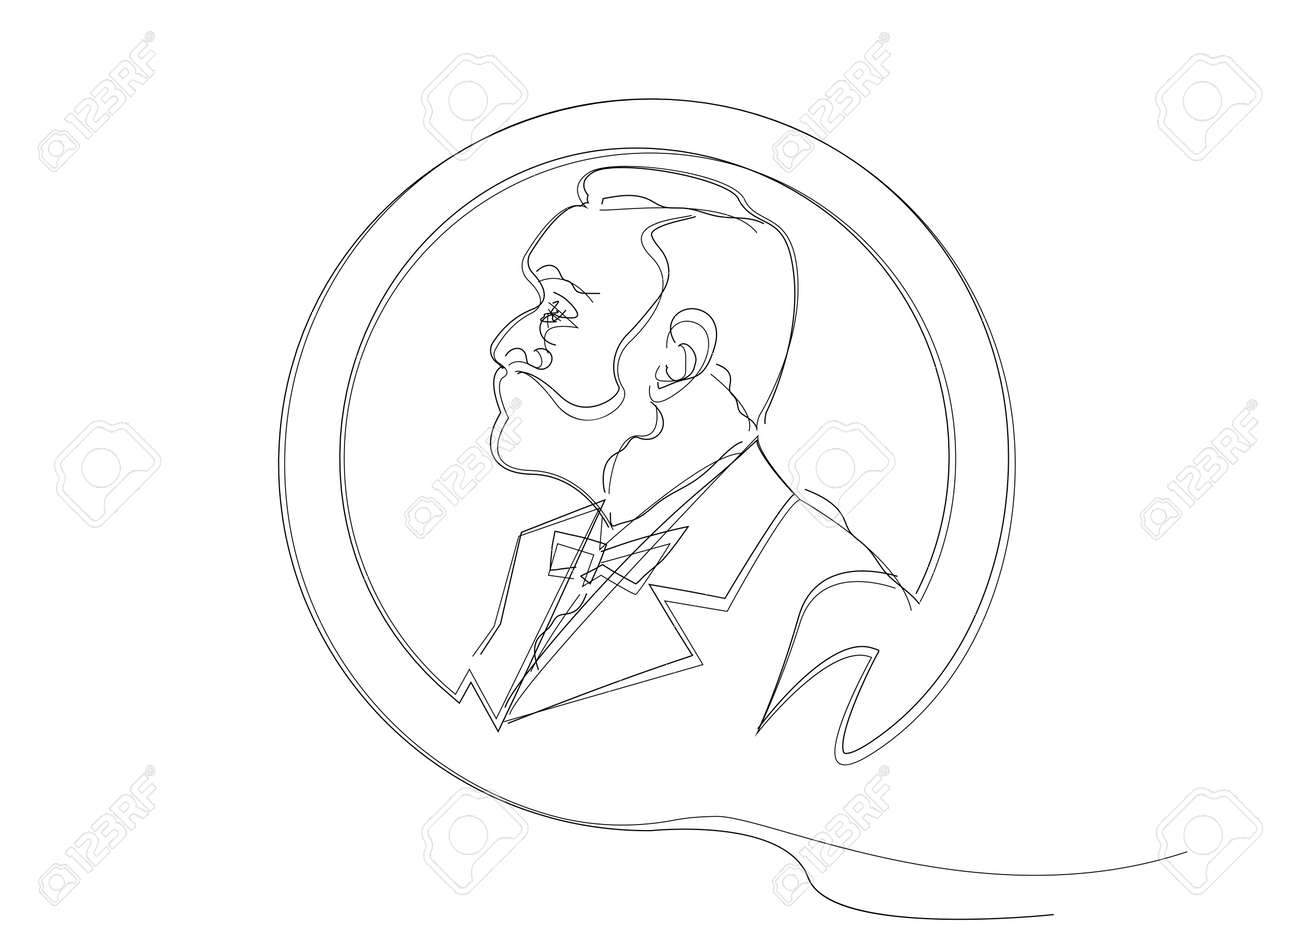 single line sketch of man with beard. Music literature award, Man Head Profile coin icon. The award of the year, vector abstract prize medal, isolated on white background - 133745385